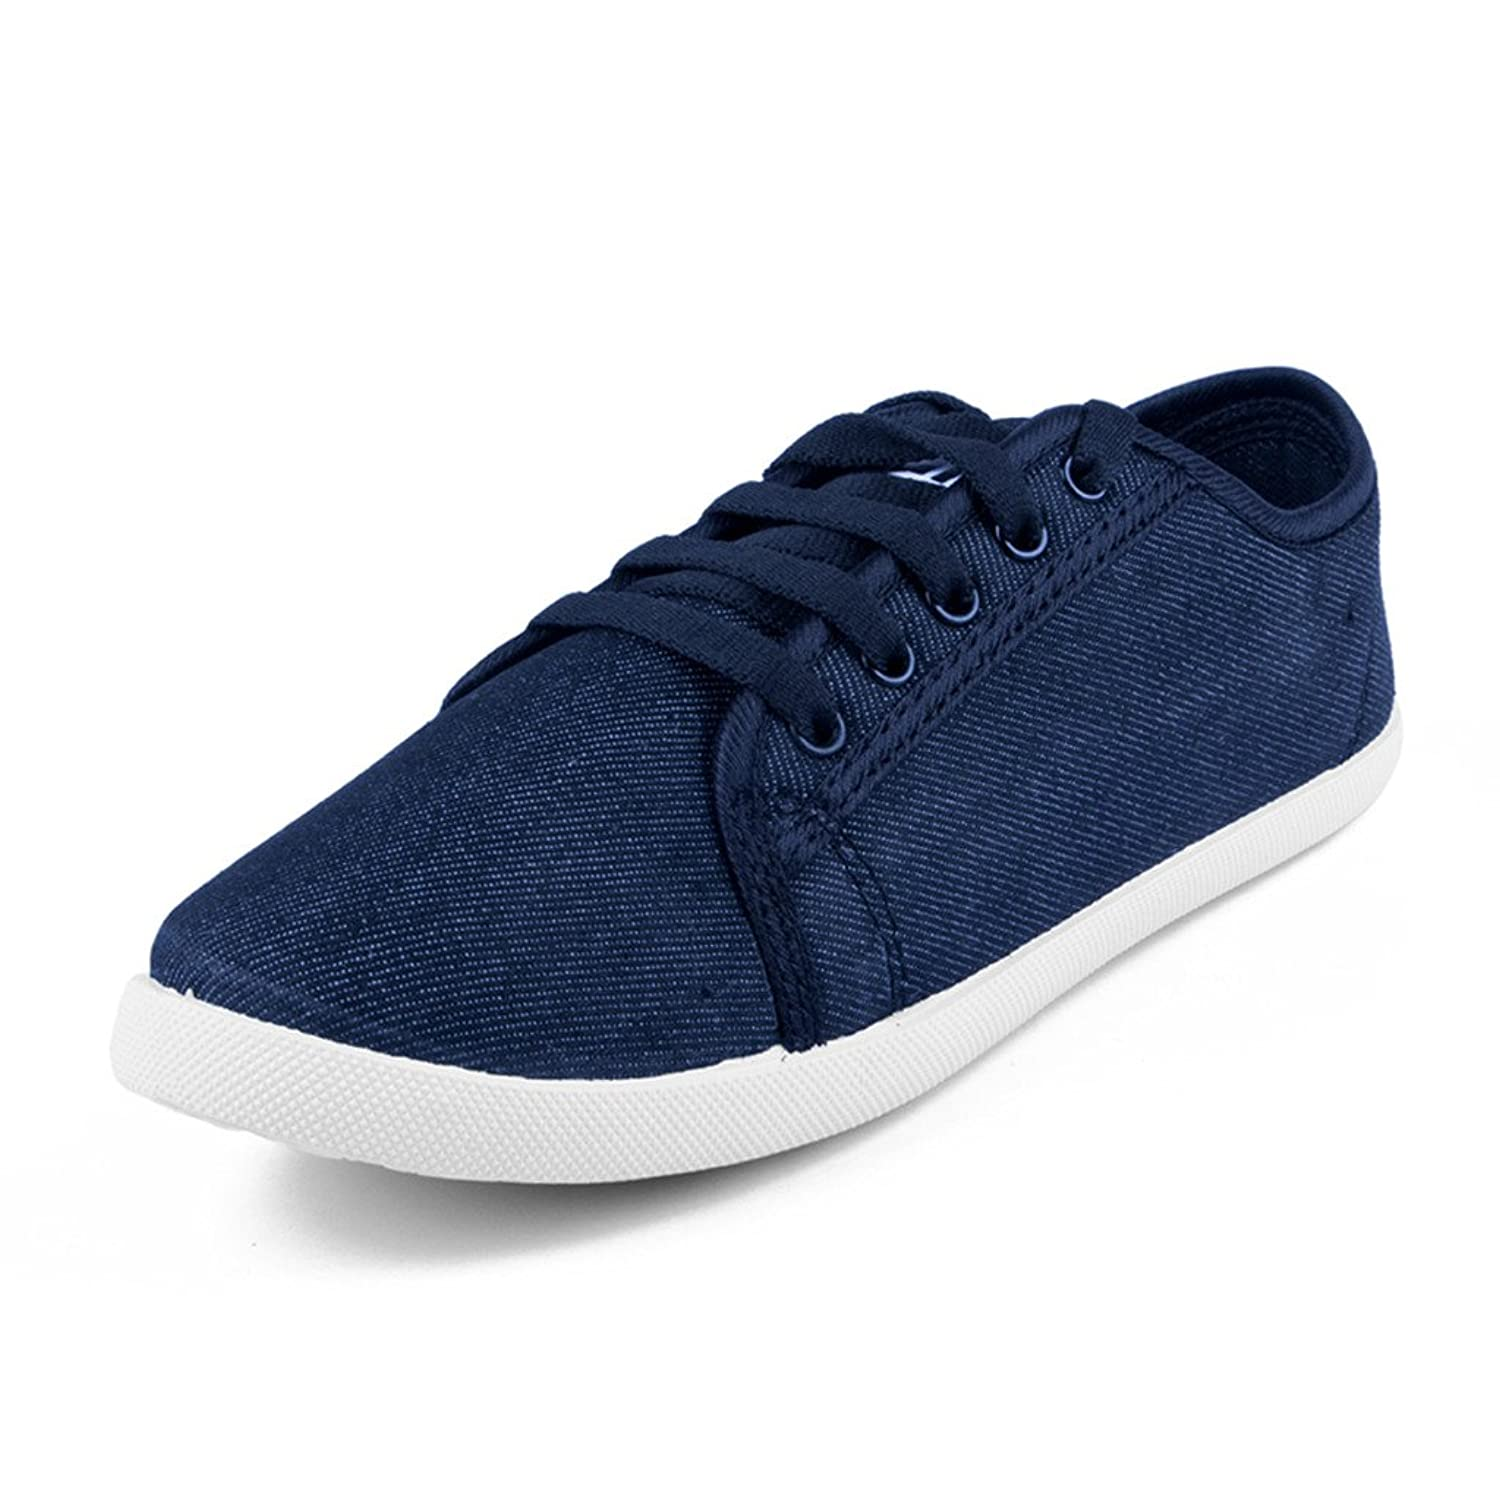 Sneakers For Women  Buy Womens Sneakers online at best prices in ... b58476746